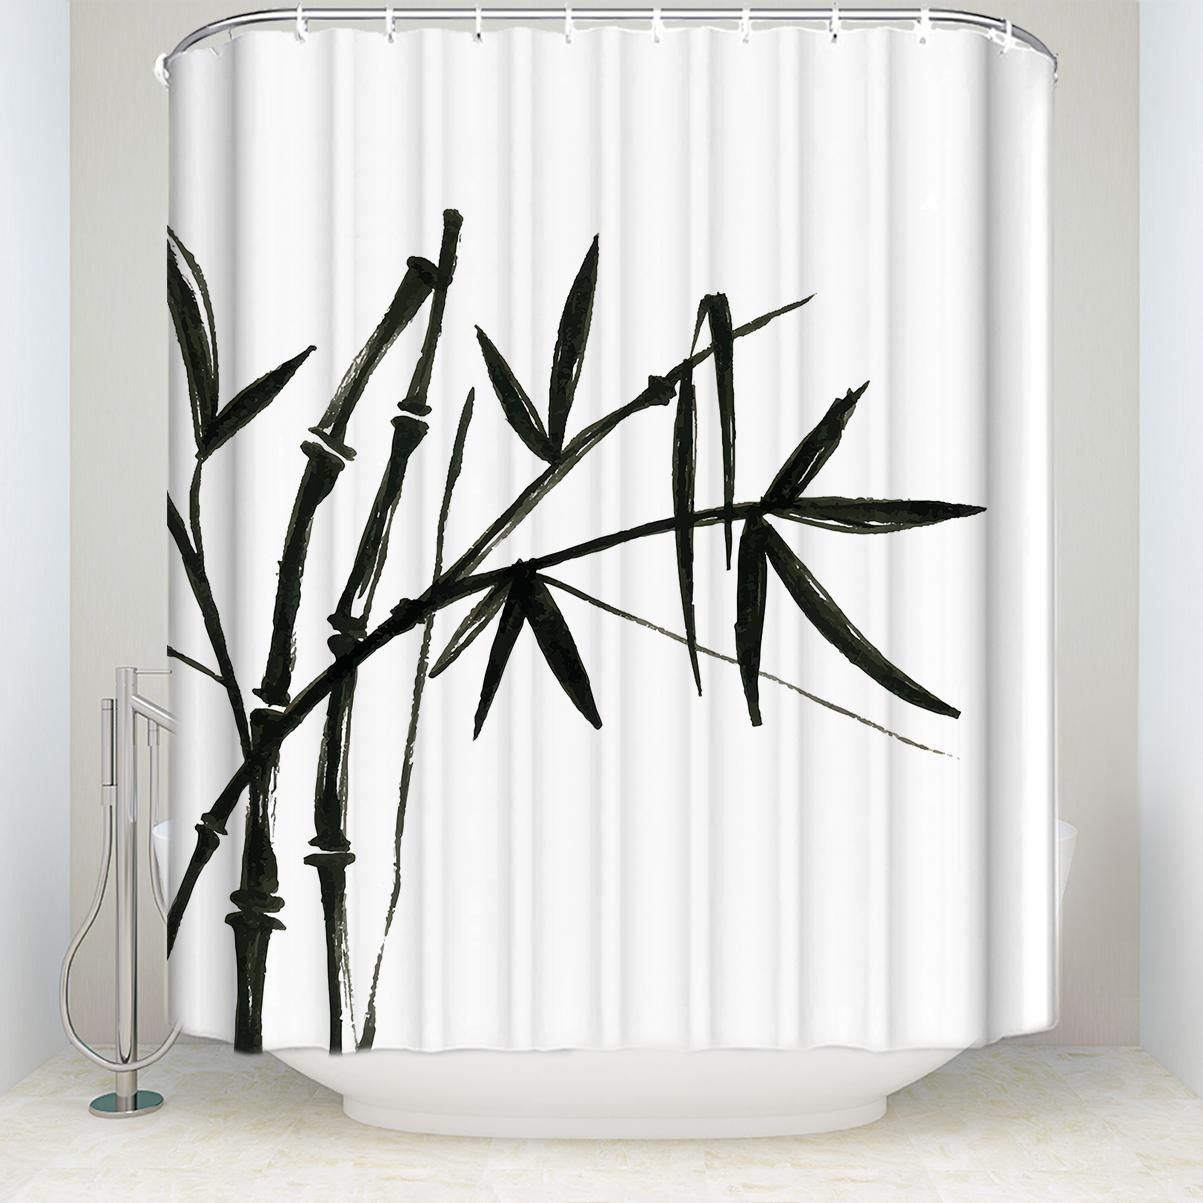 2019 Custom Waterproof Bathroom Chinese Ink Painting Bamboo Print Shower Curtain Polyester Fabric Black White From Waxer 3051